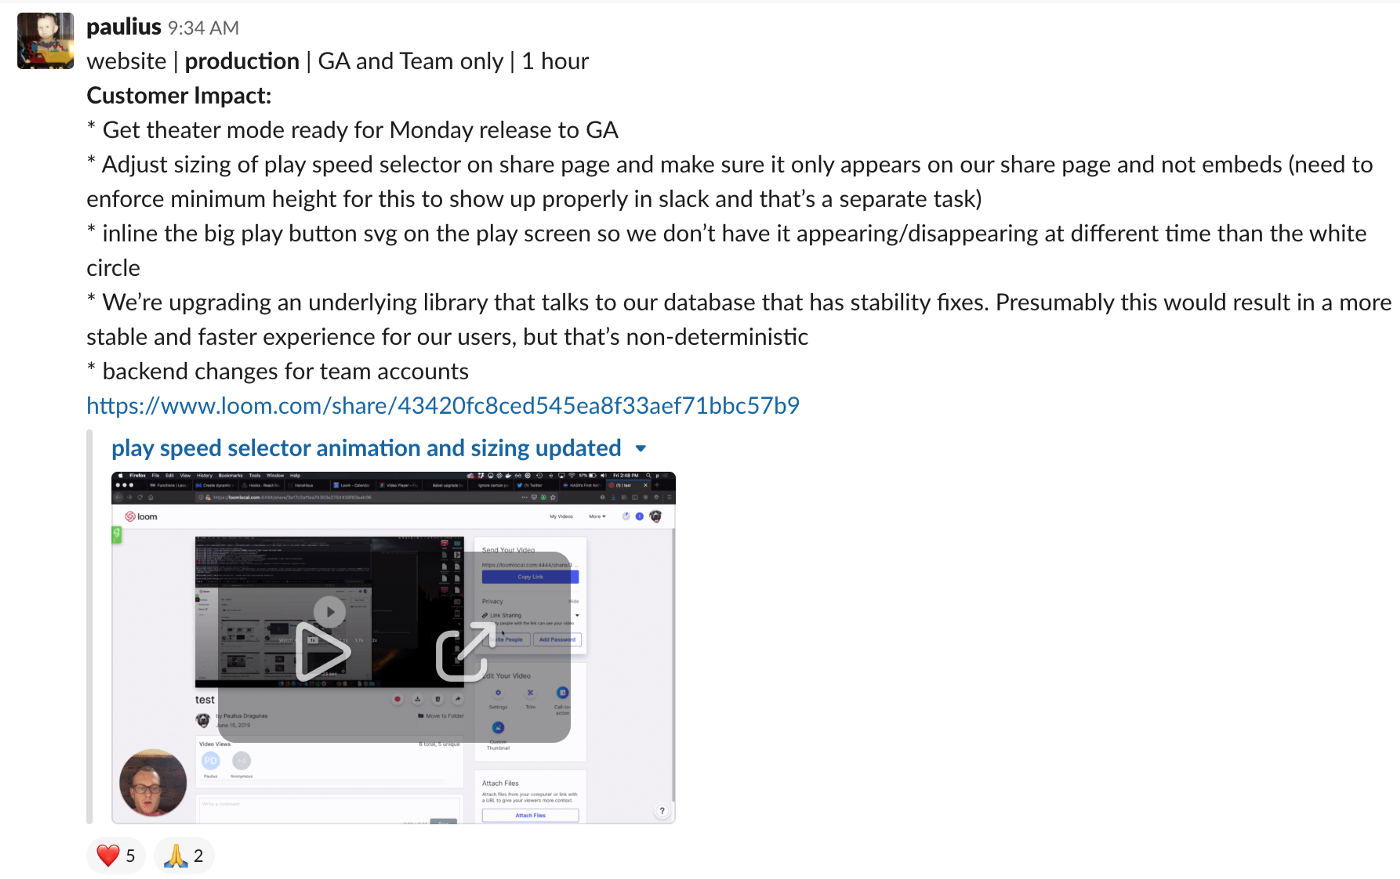 A screenshot of the Loom video player as it appears inline in Slack.